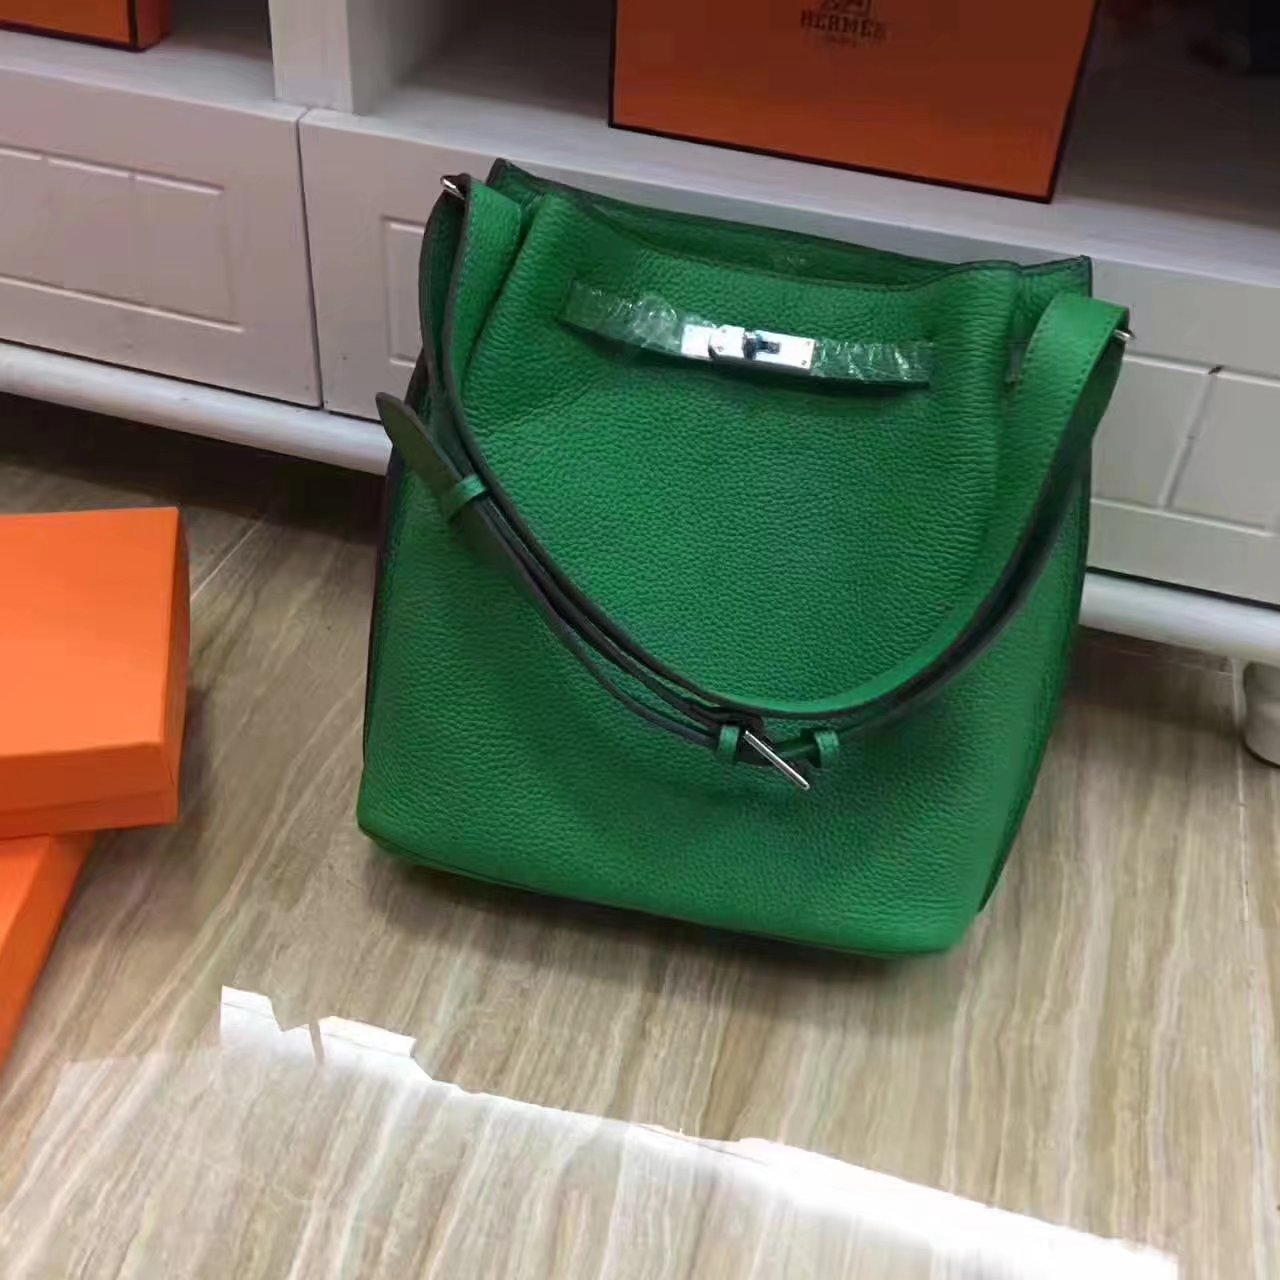 Hermes So Kelly 28cm Leather Shoulder Bag Green With Silver